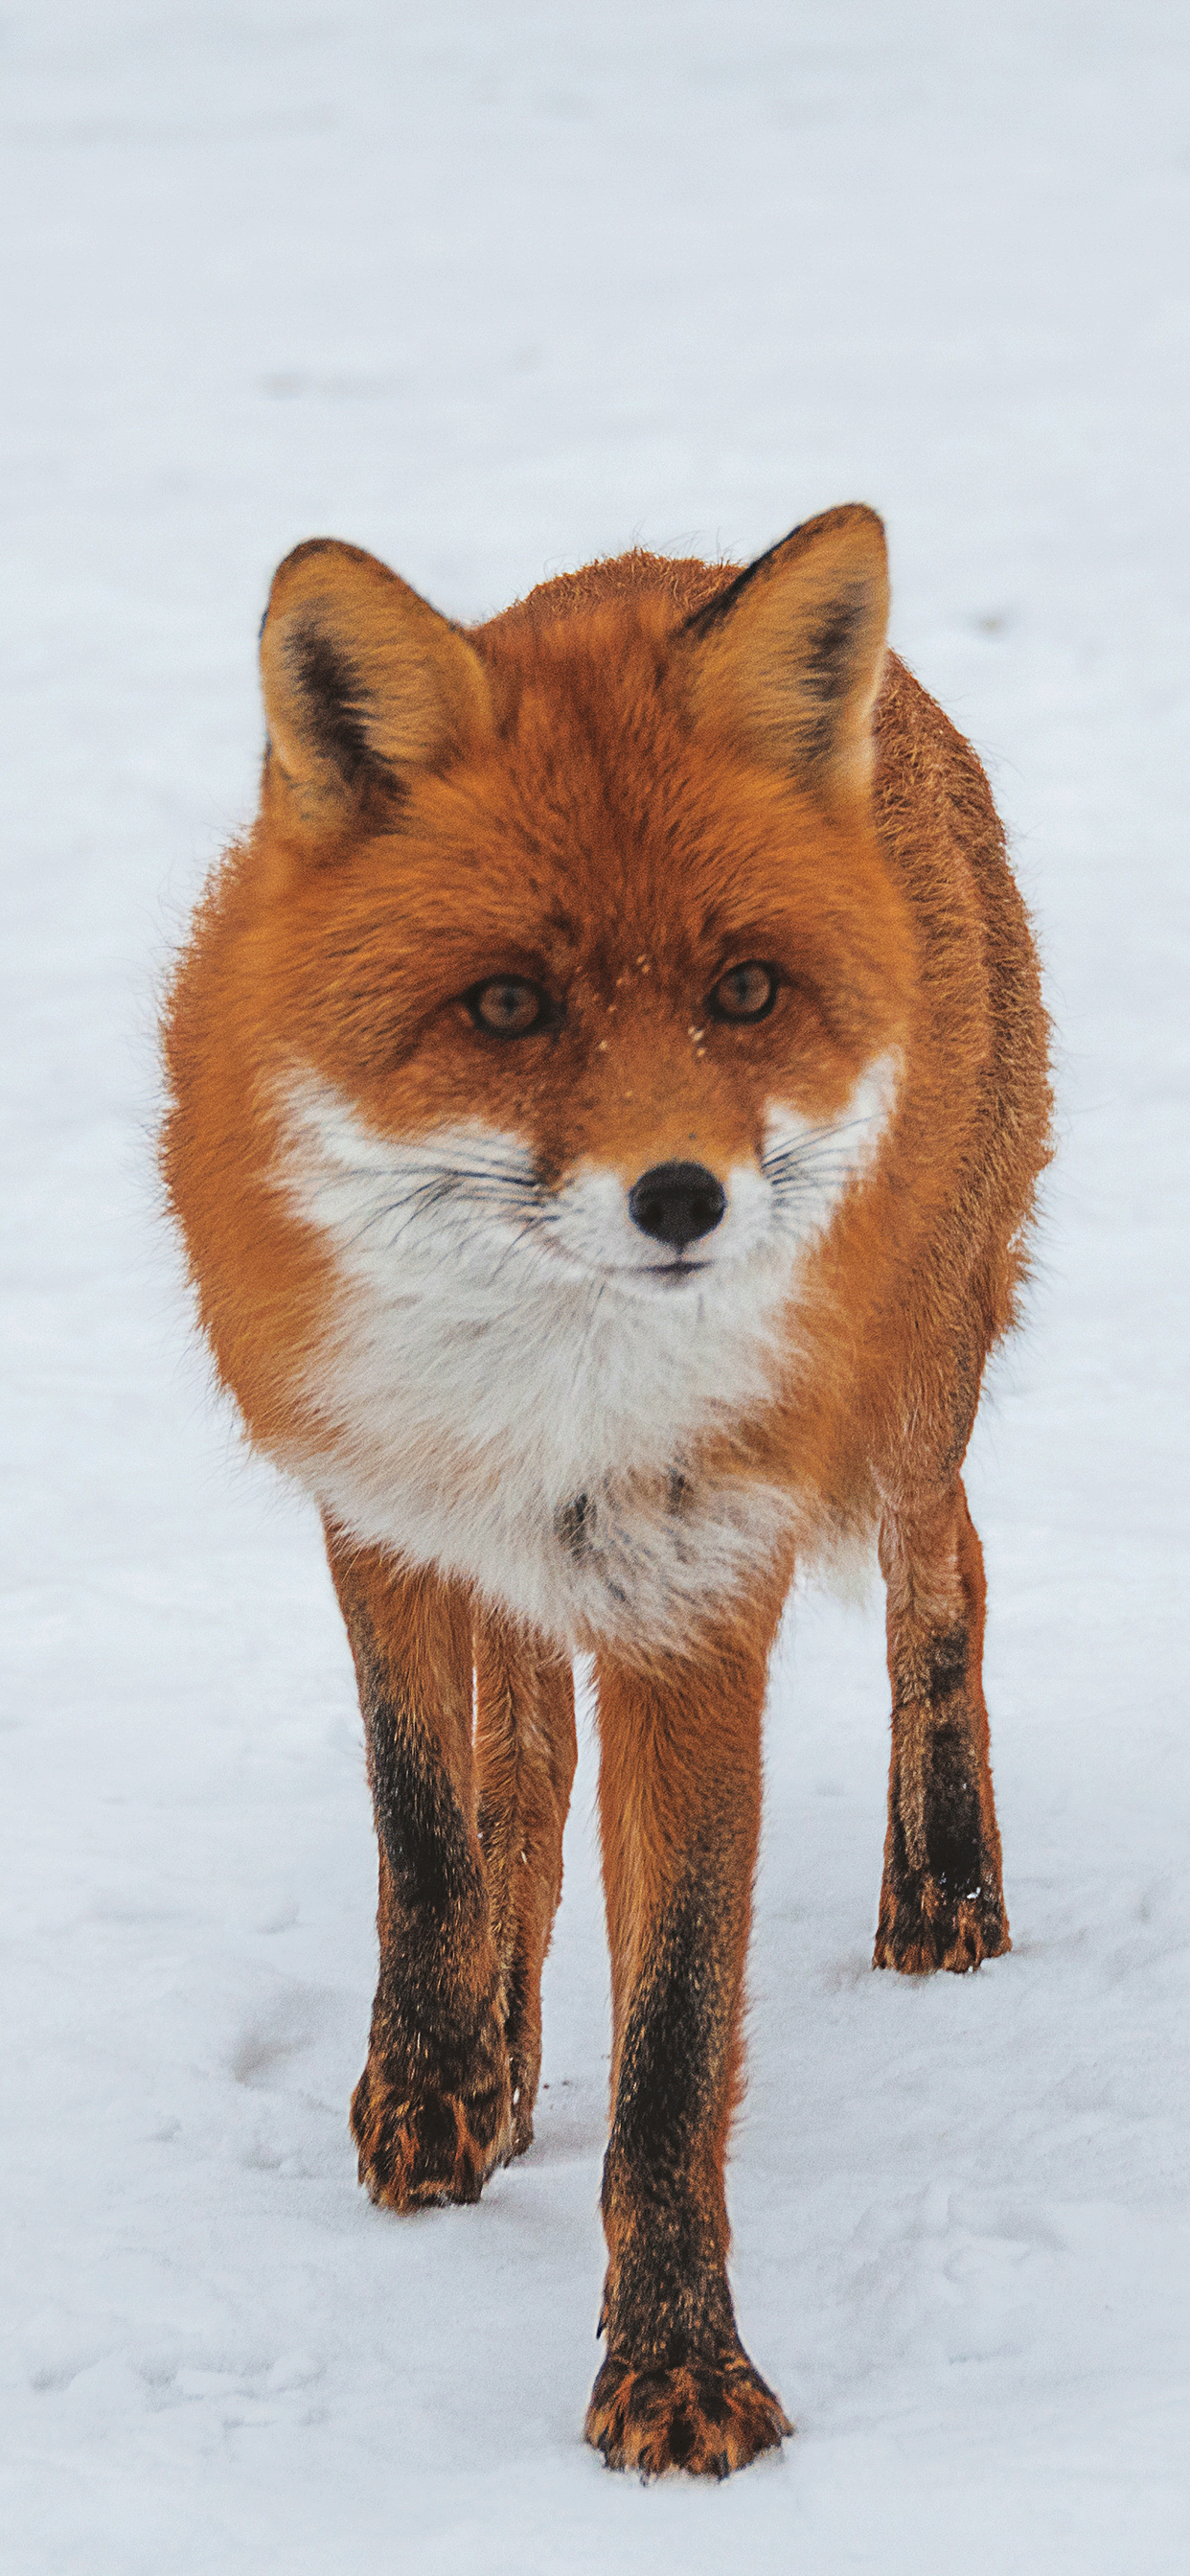 iPhone wallpaper fox ukraine Fonds d'écran iPhone du 06/02/2019